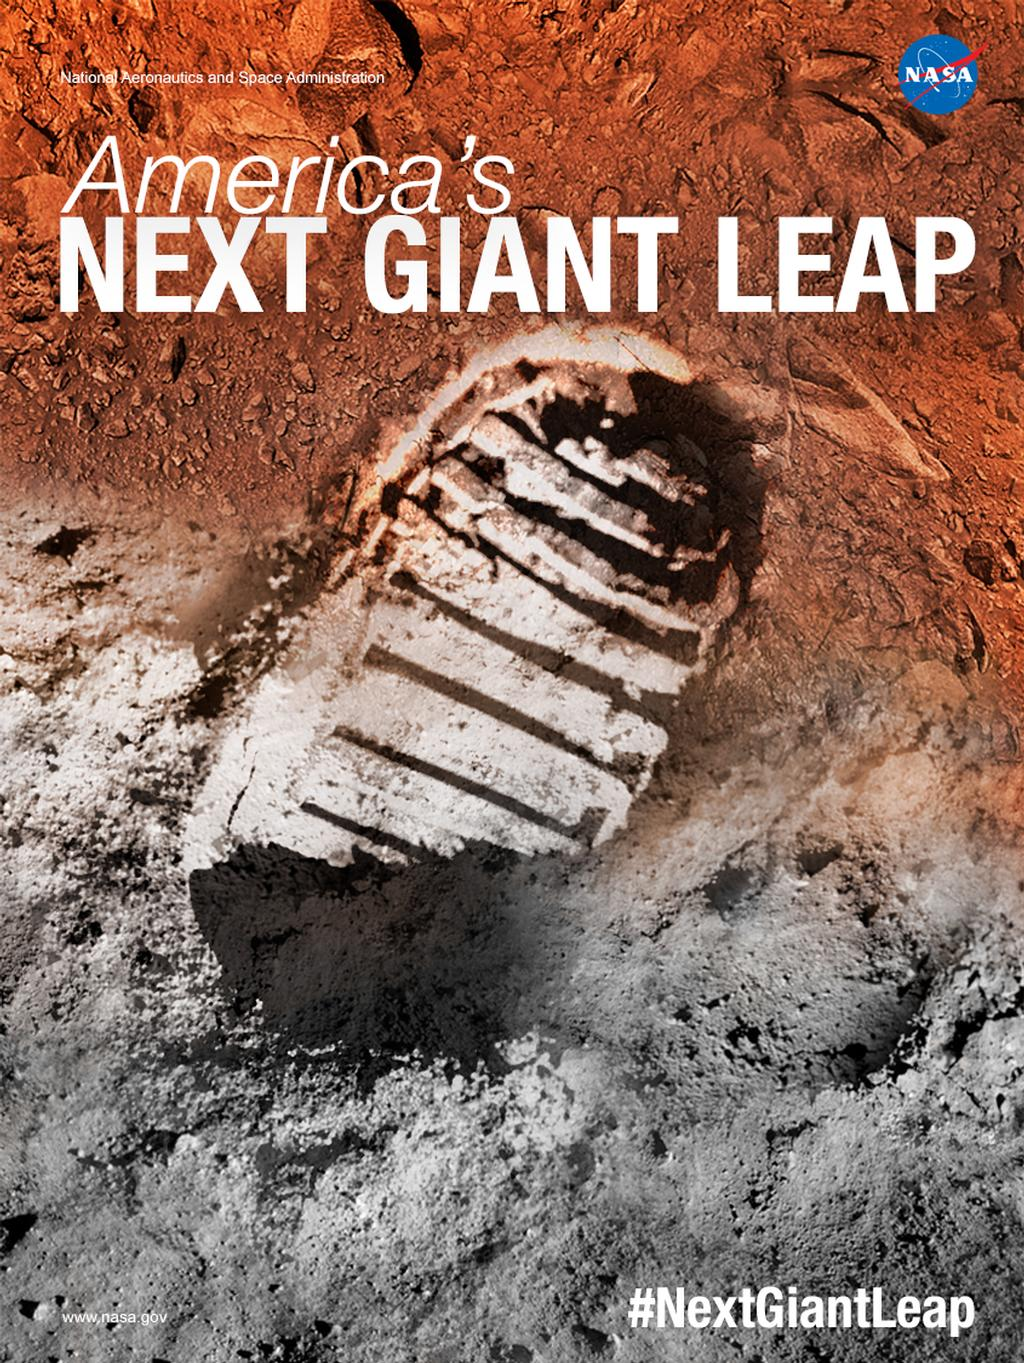 An artist's concept showing an astronaut boot print. Half the boot print is on orange soil, while the other on gray.